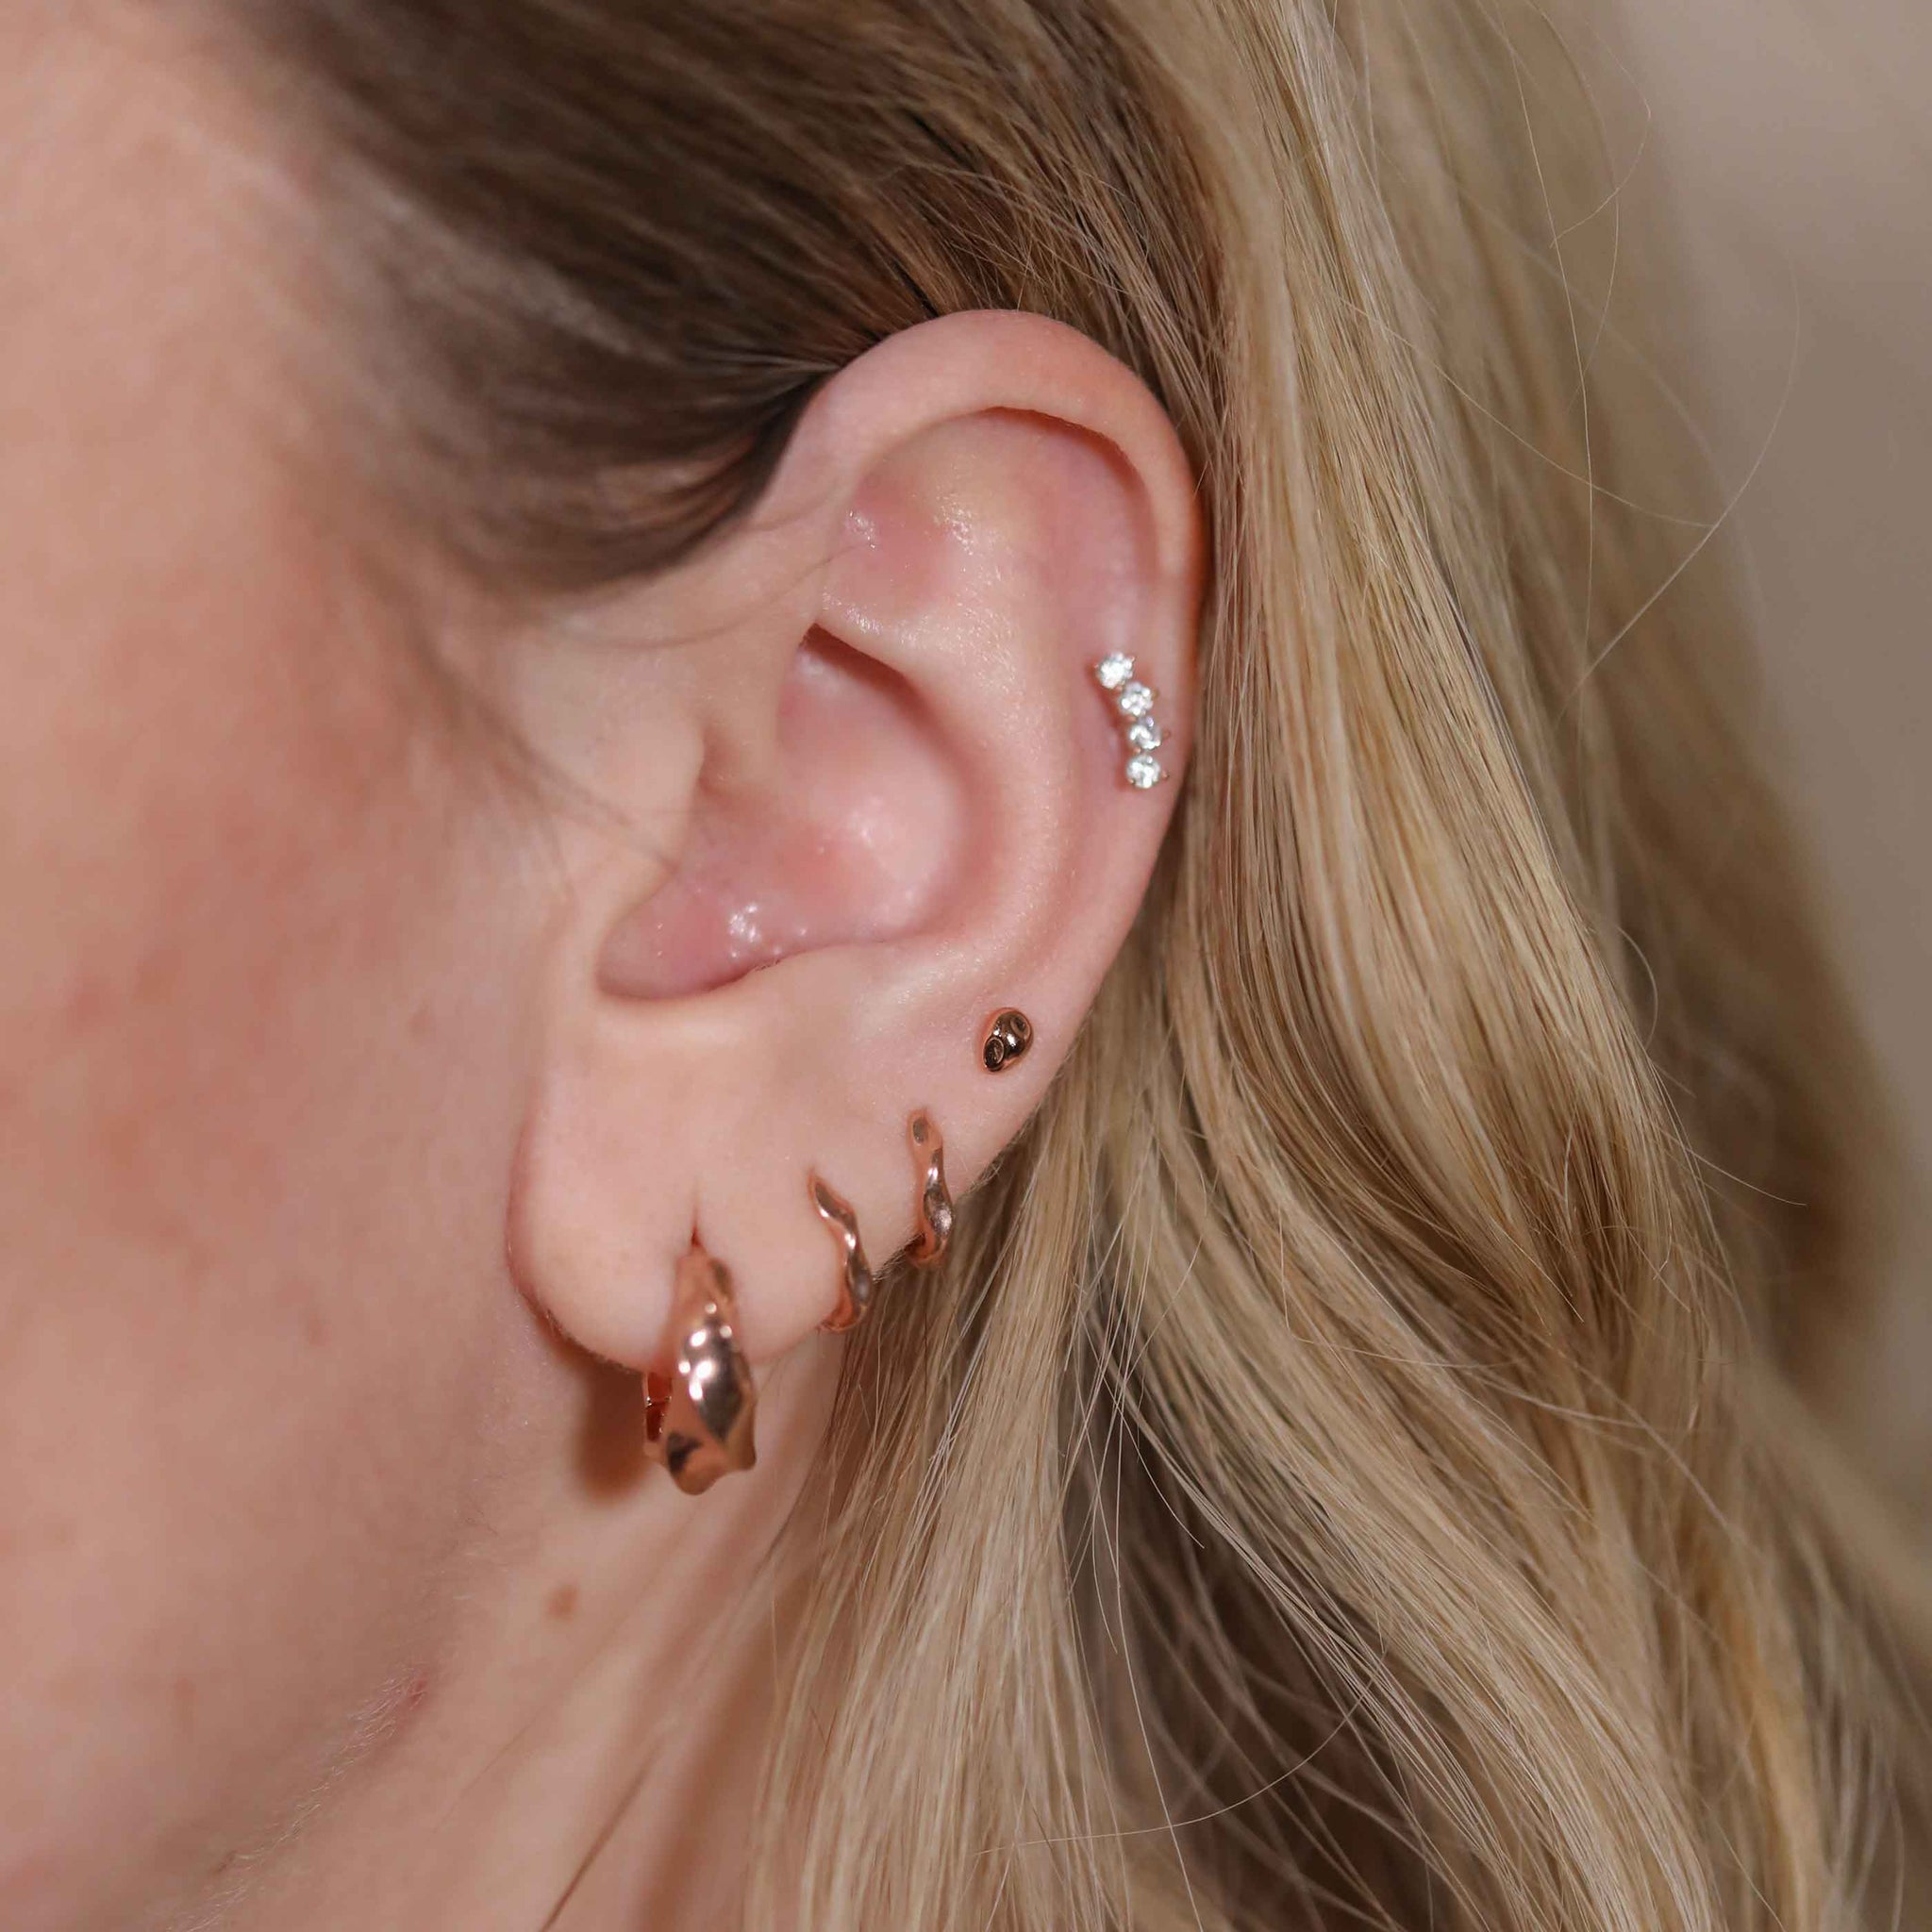 Molten Stud Earrings in Rose Gold worn with curved crystal barbell and elemental huggies